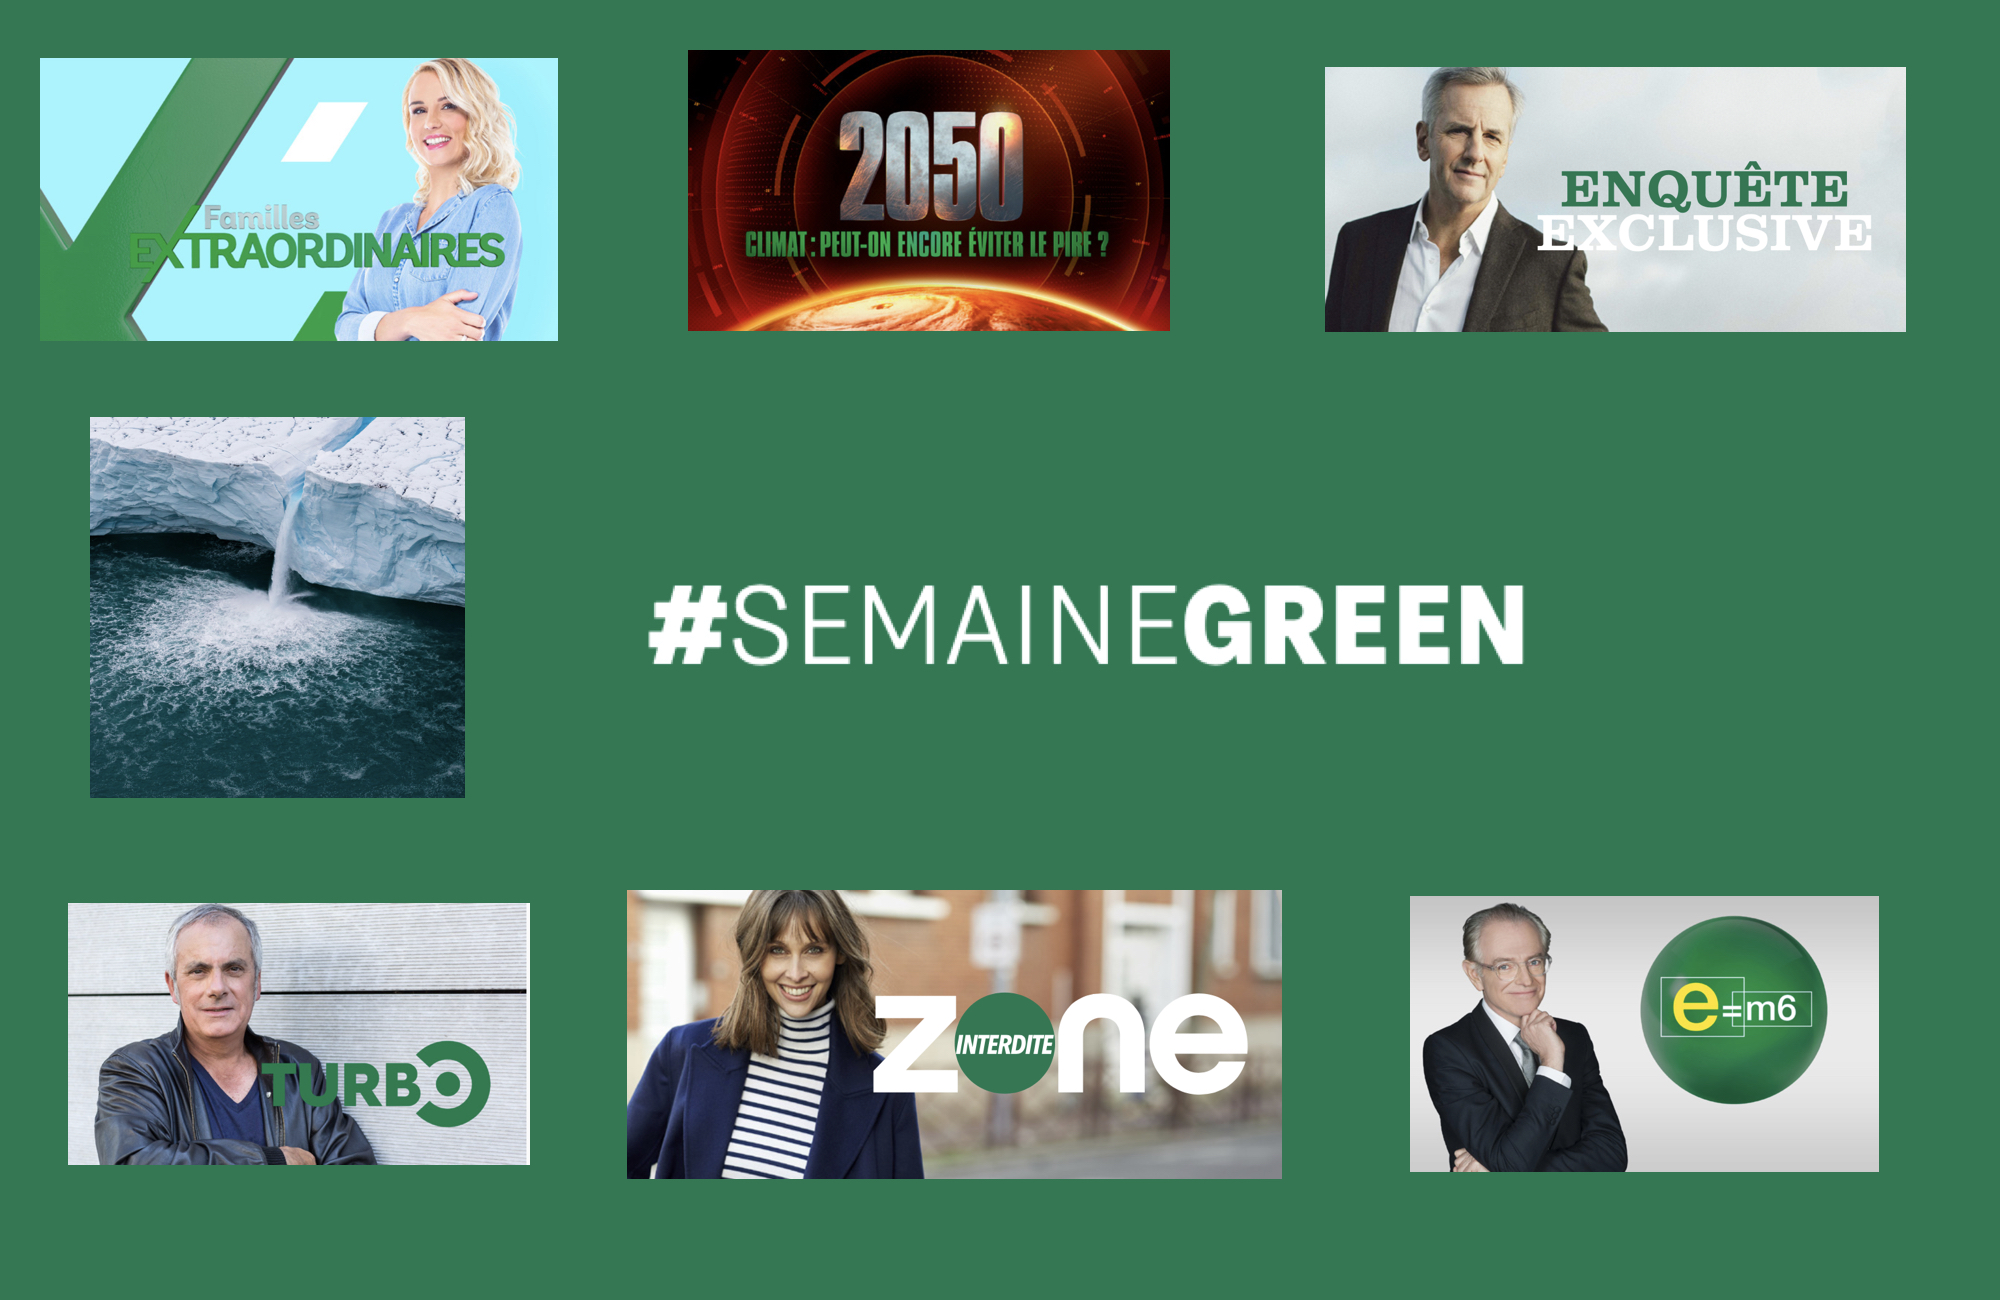 Semaine green - Groupe M6 - 2021 -